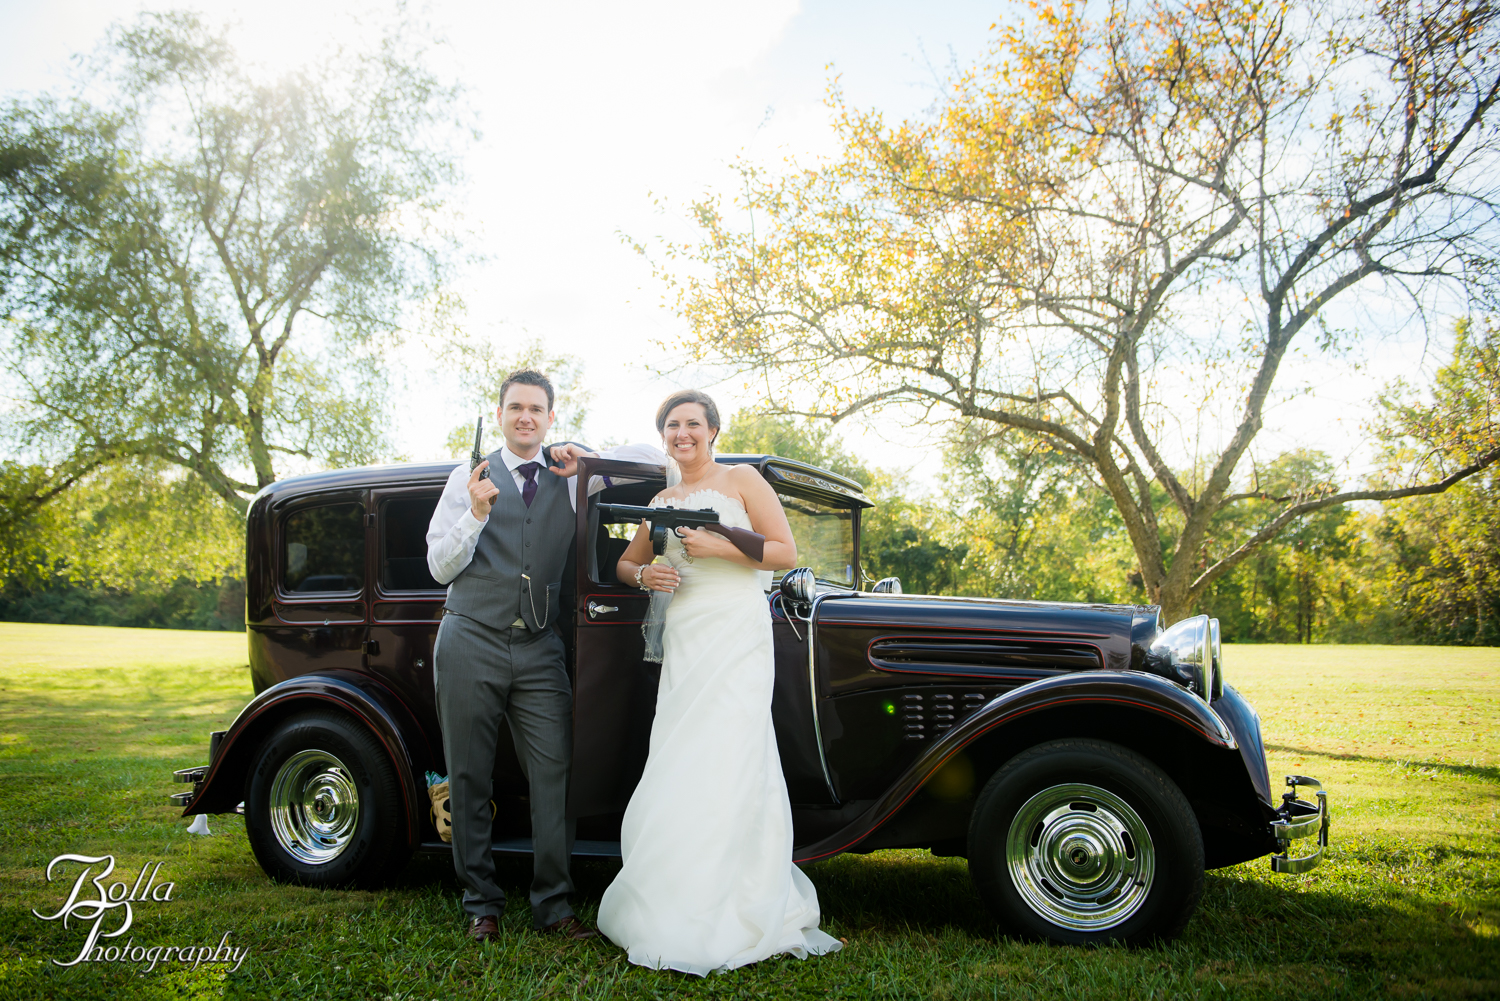 Bolla_Photography_St_Louis_wedding_photographer-0361.jpg